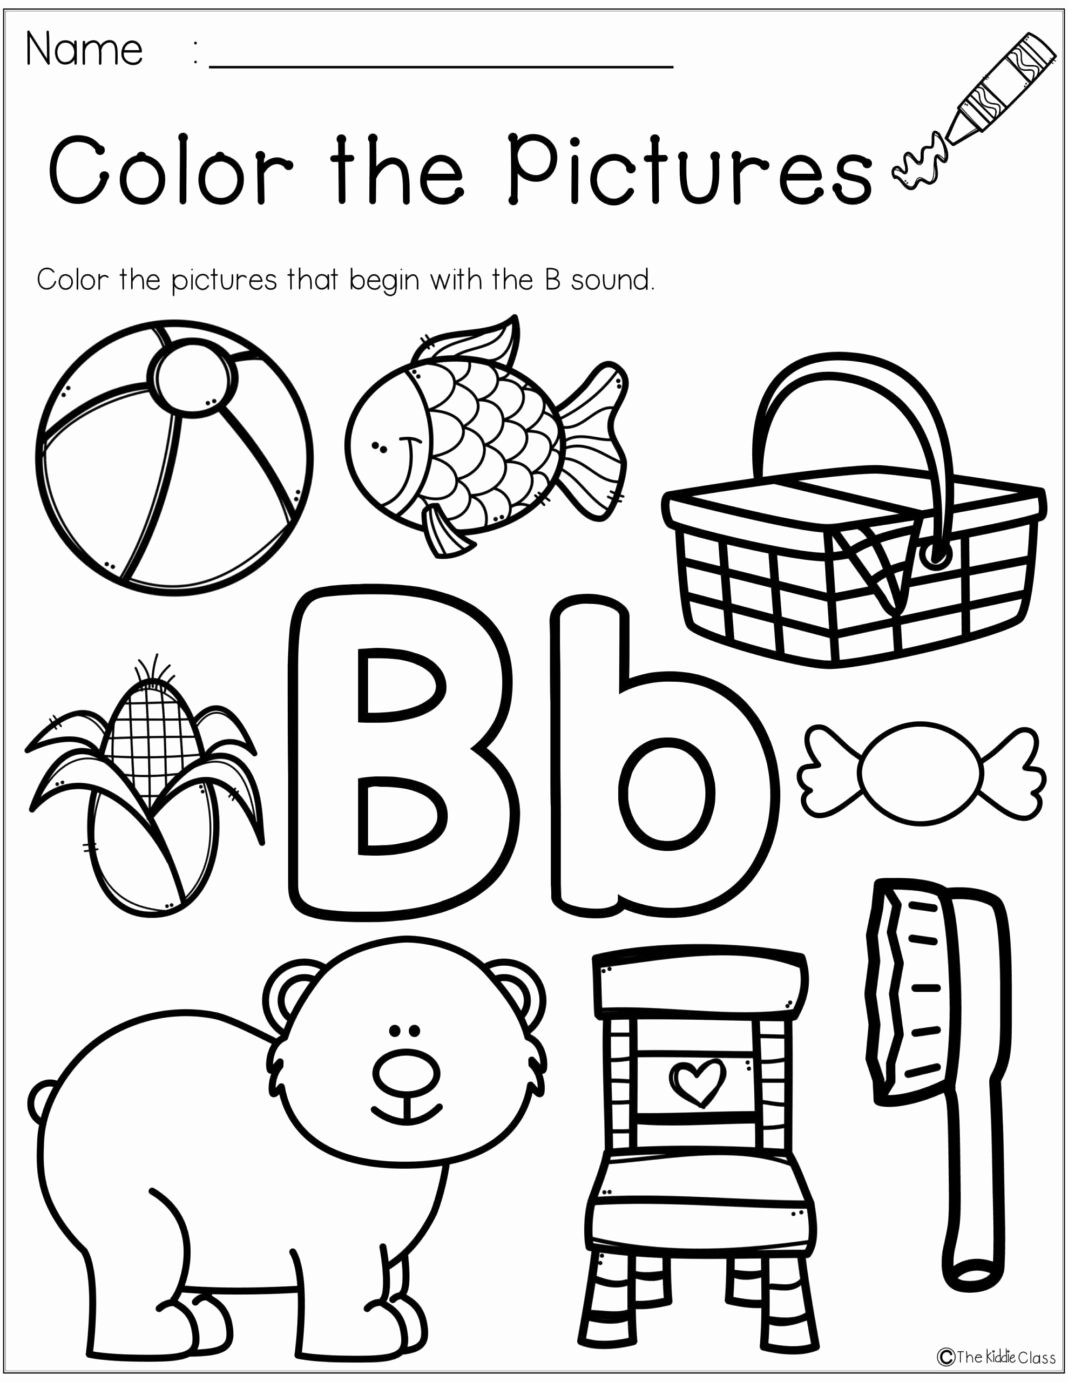 Worksheets for Preschoolers On Letters Lovely Worksheets Free Letter the Week Worksheets Preschool